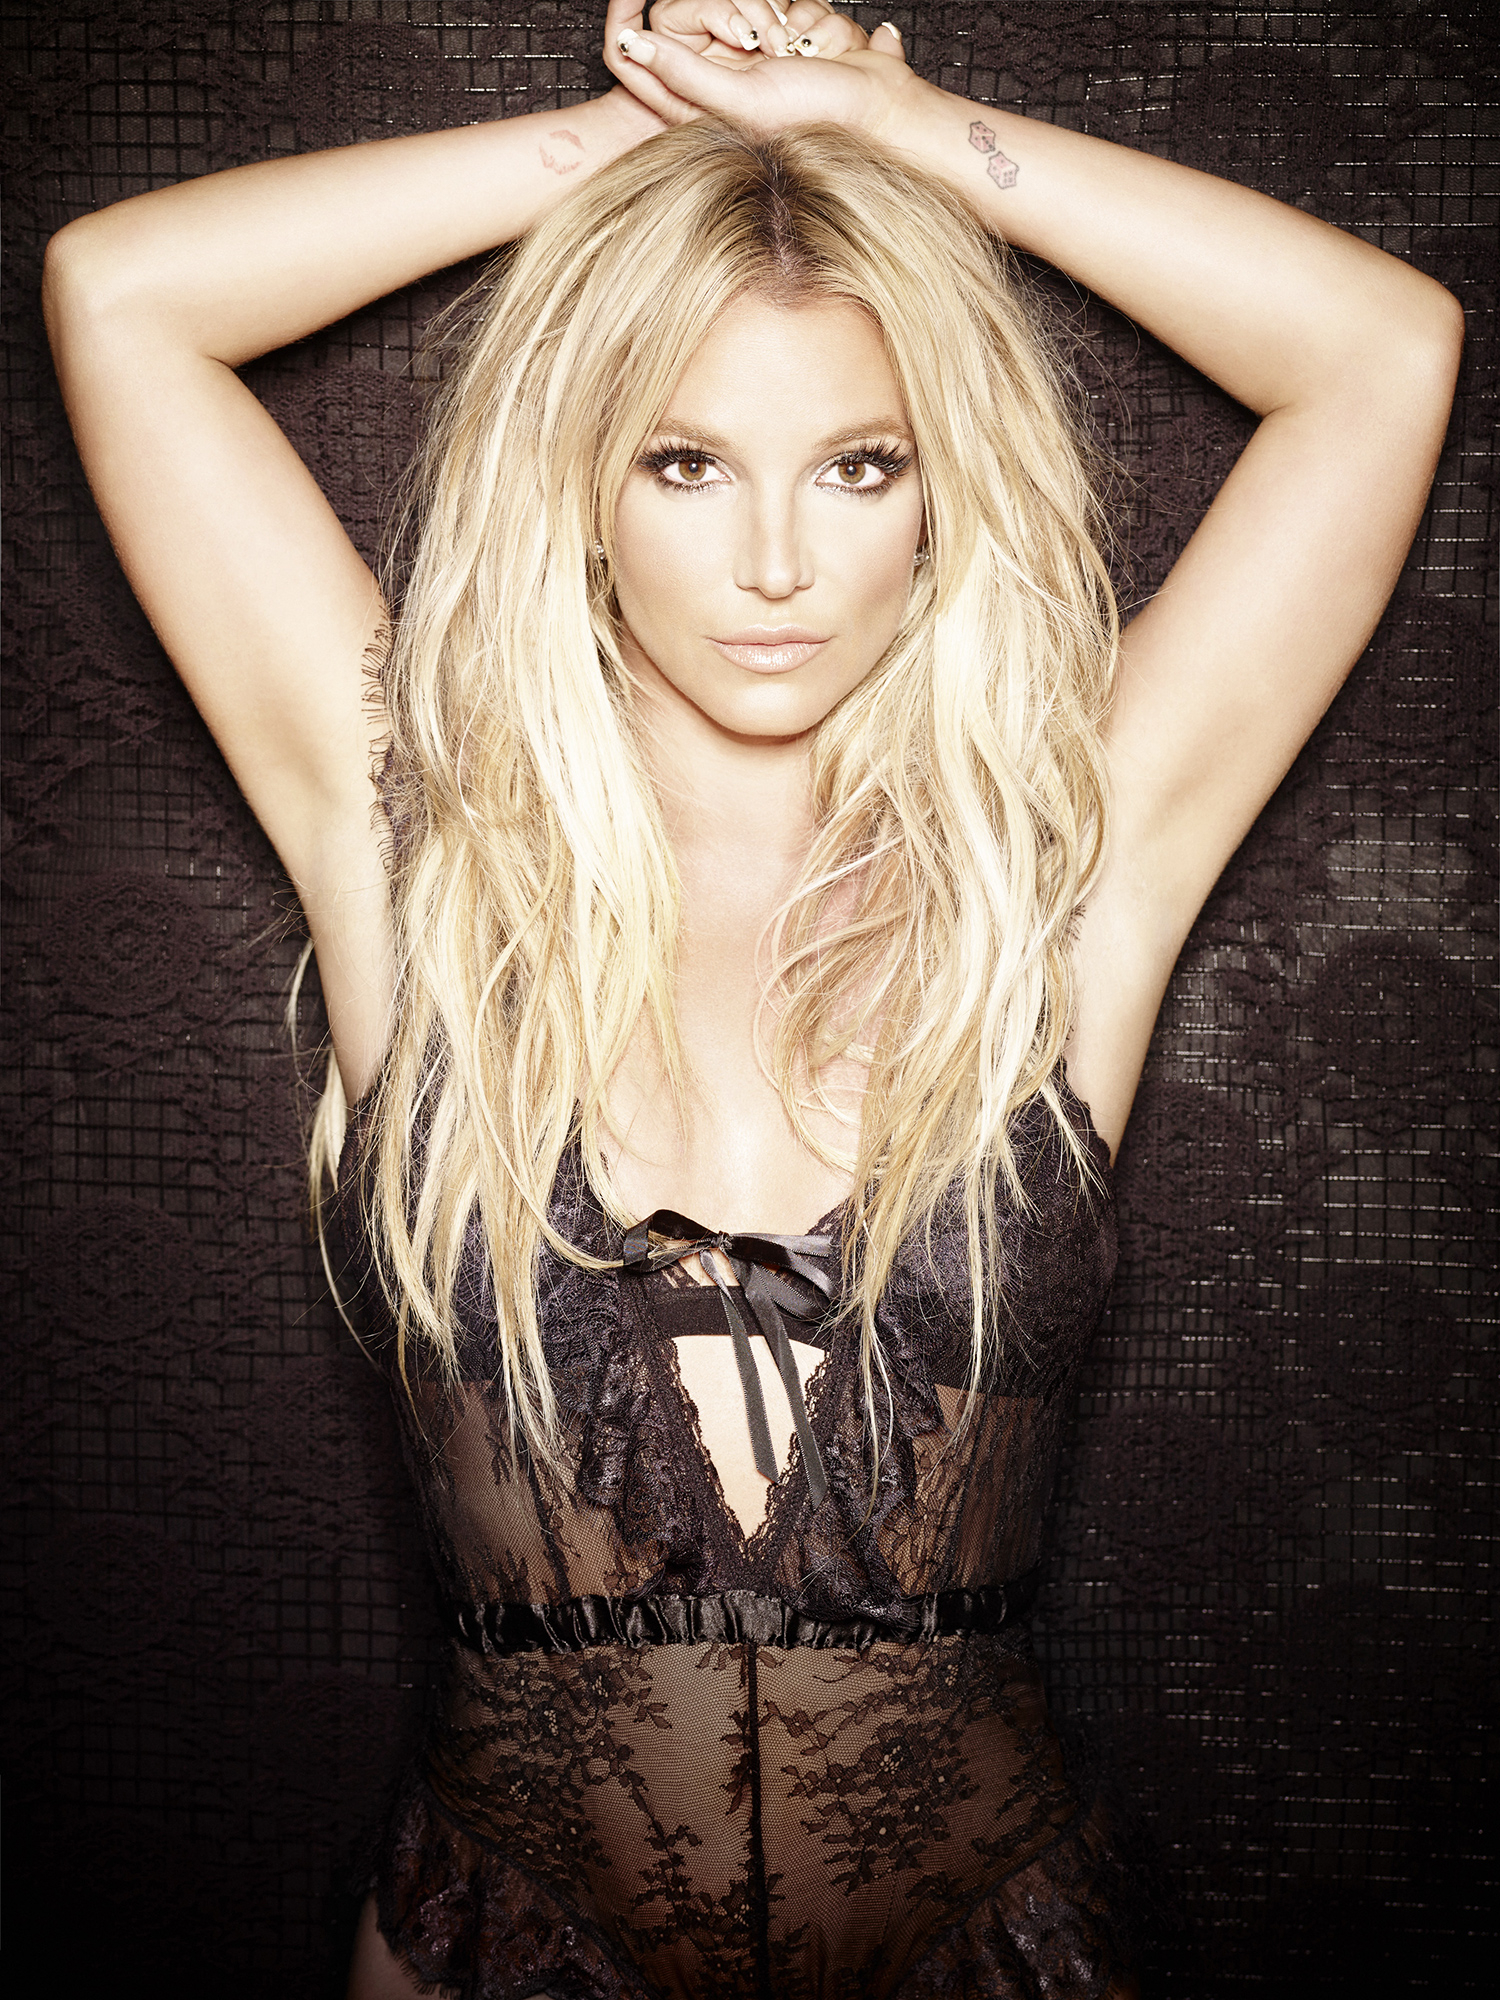 rs-britney-spears-f31380b9-1475-49a6-a68